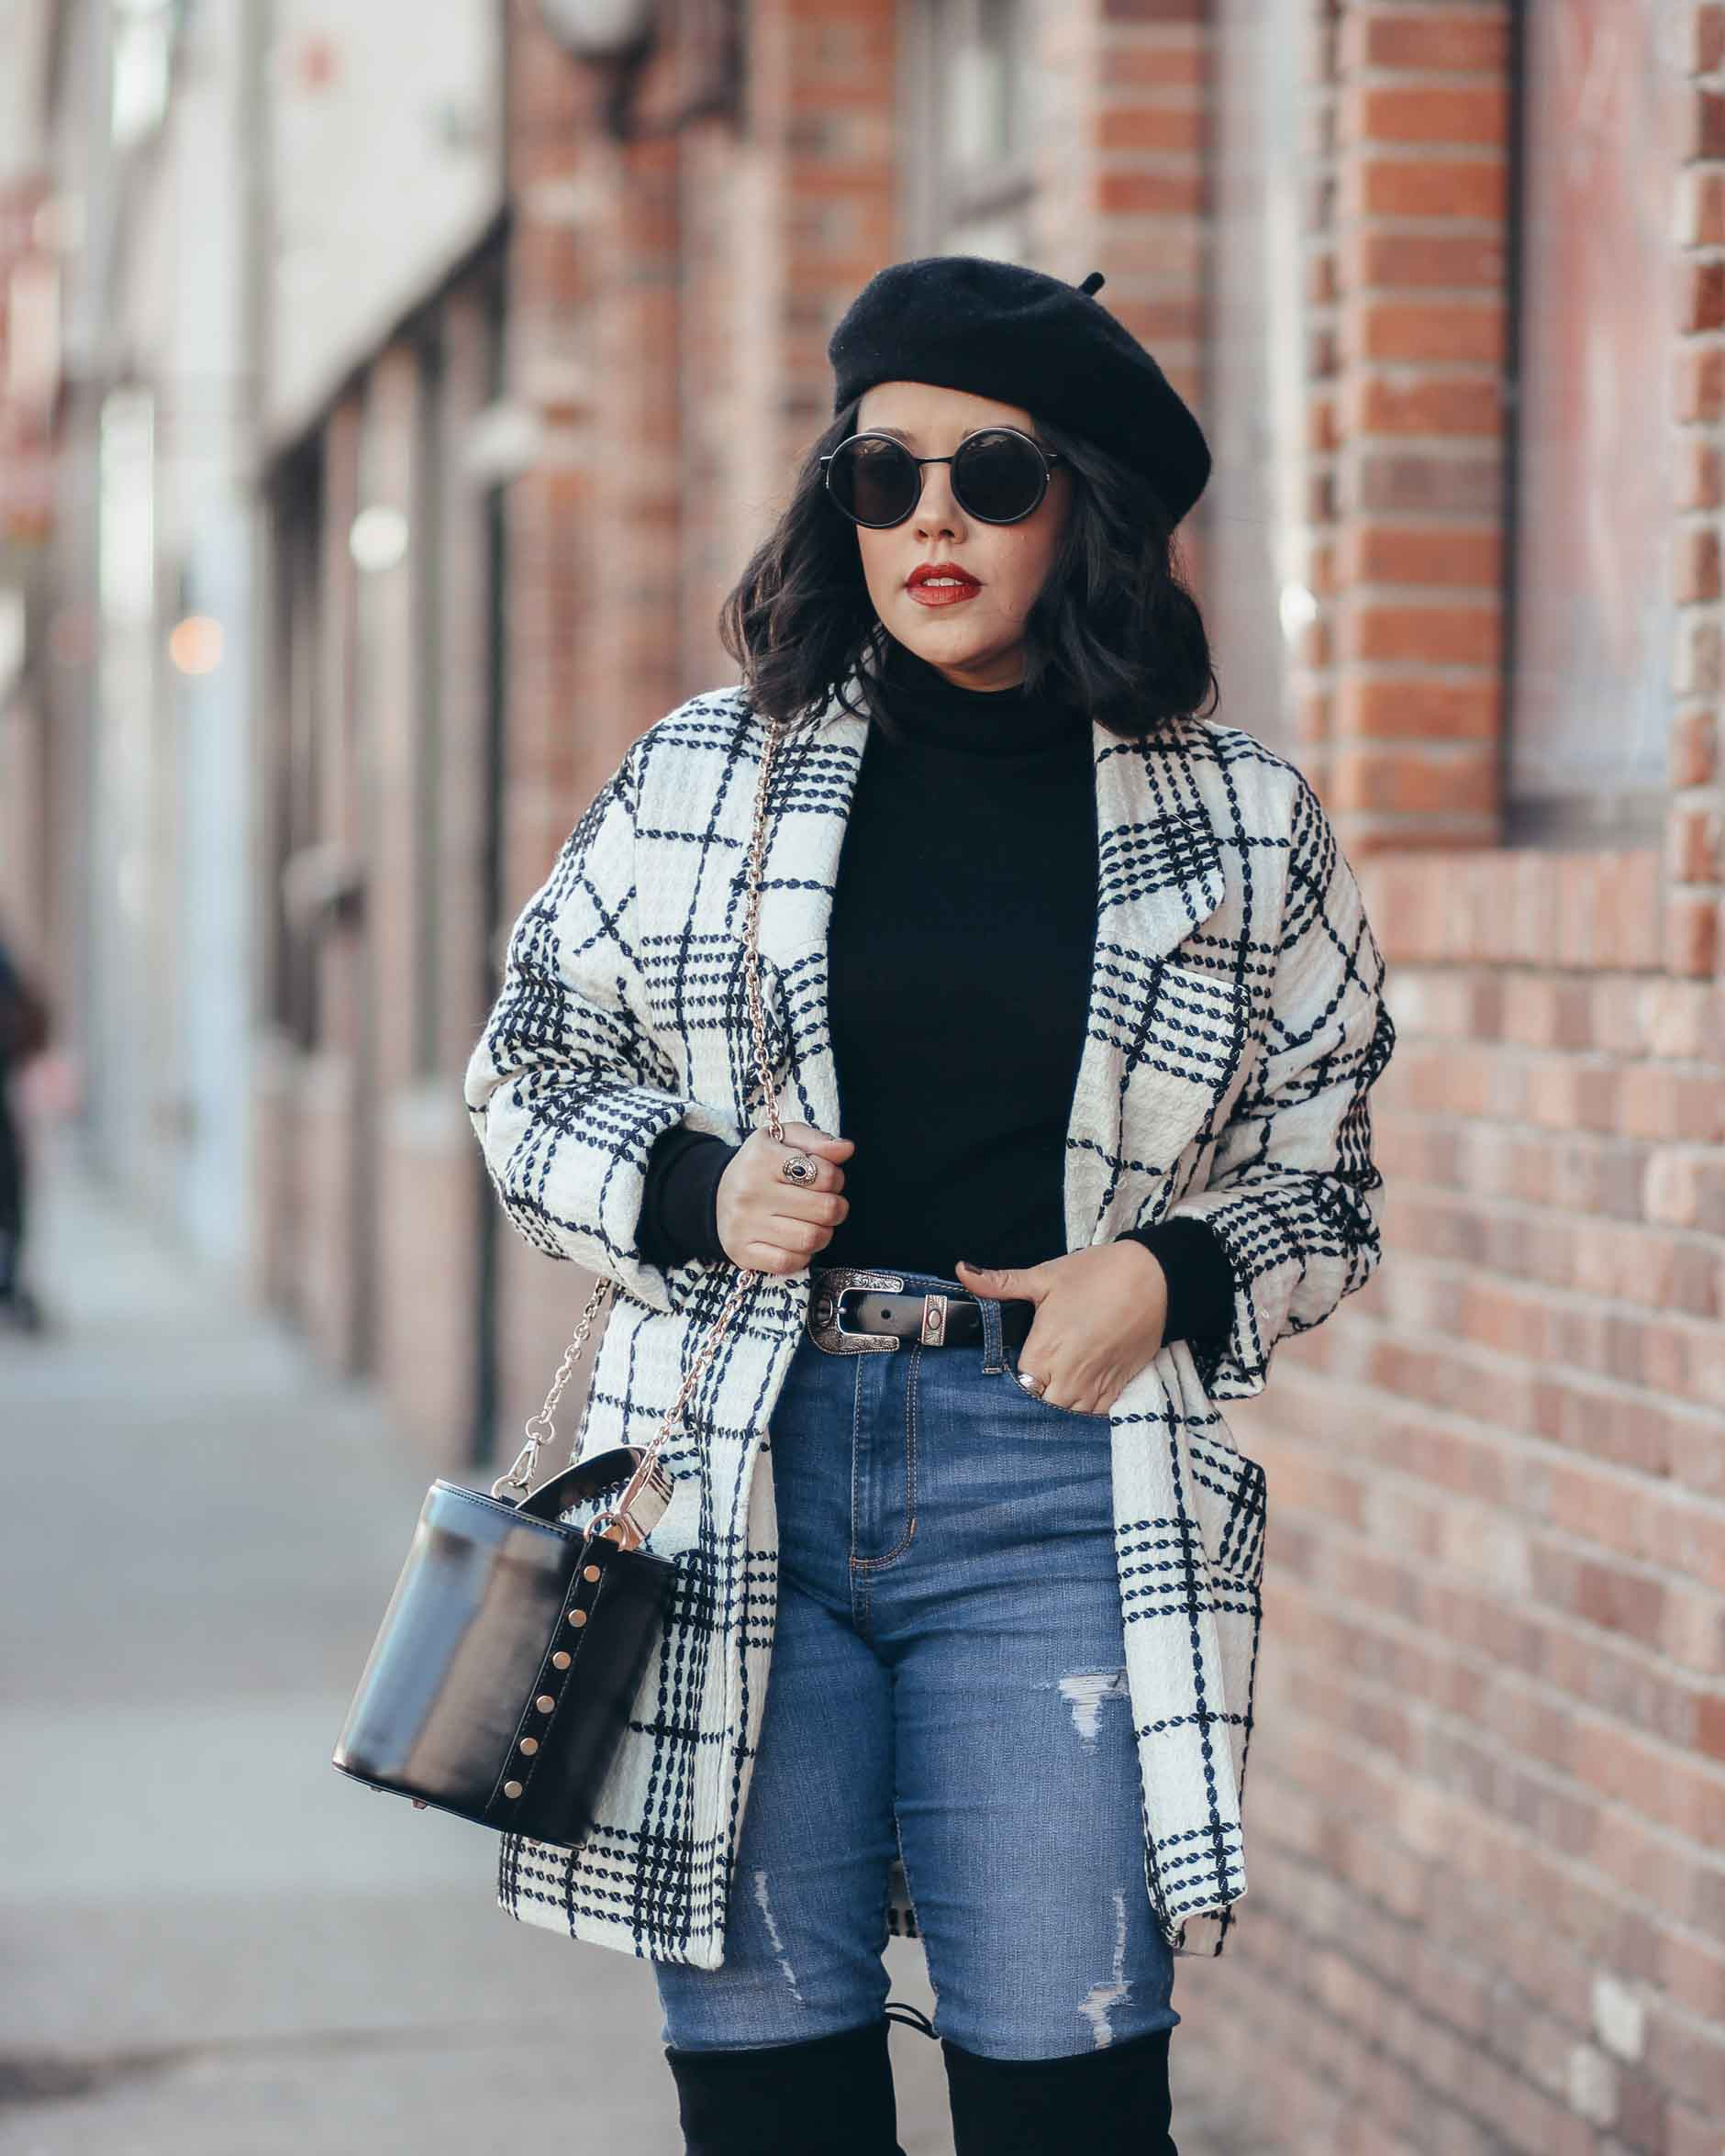 lifestyle blogger naty michele wearing a beret and a black and white coat